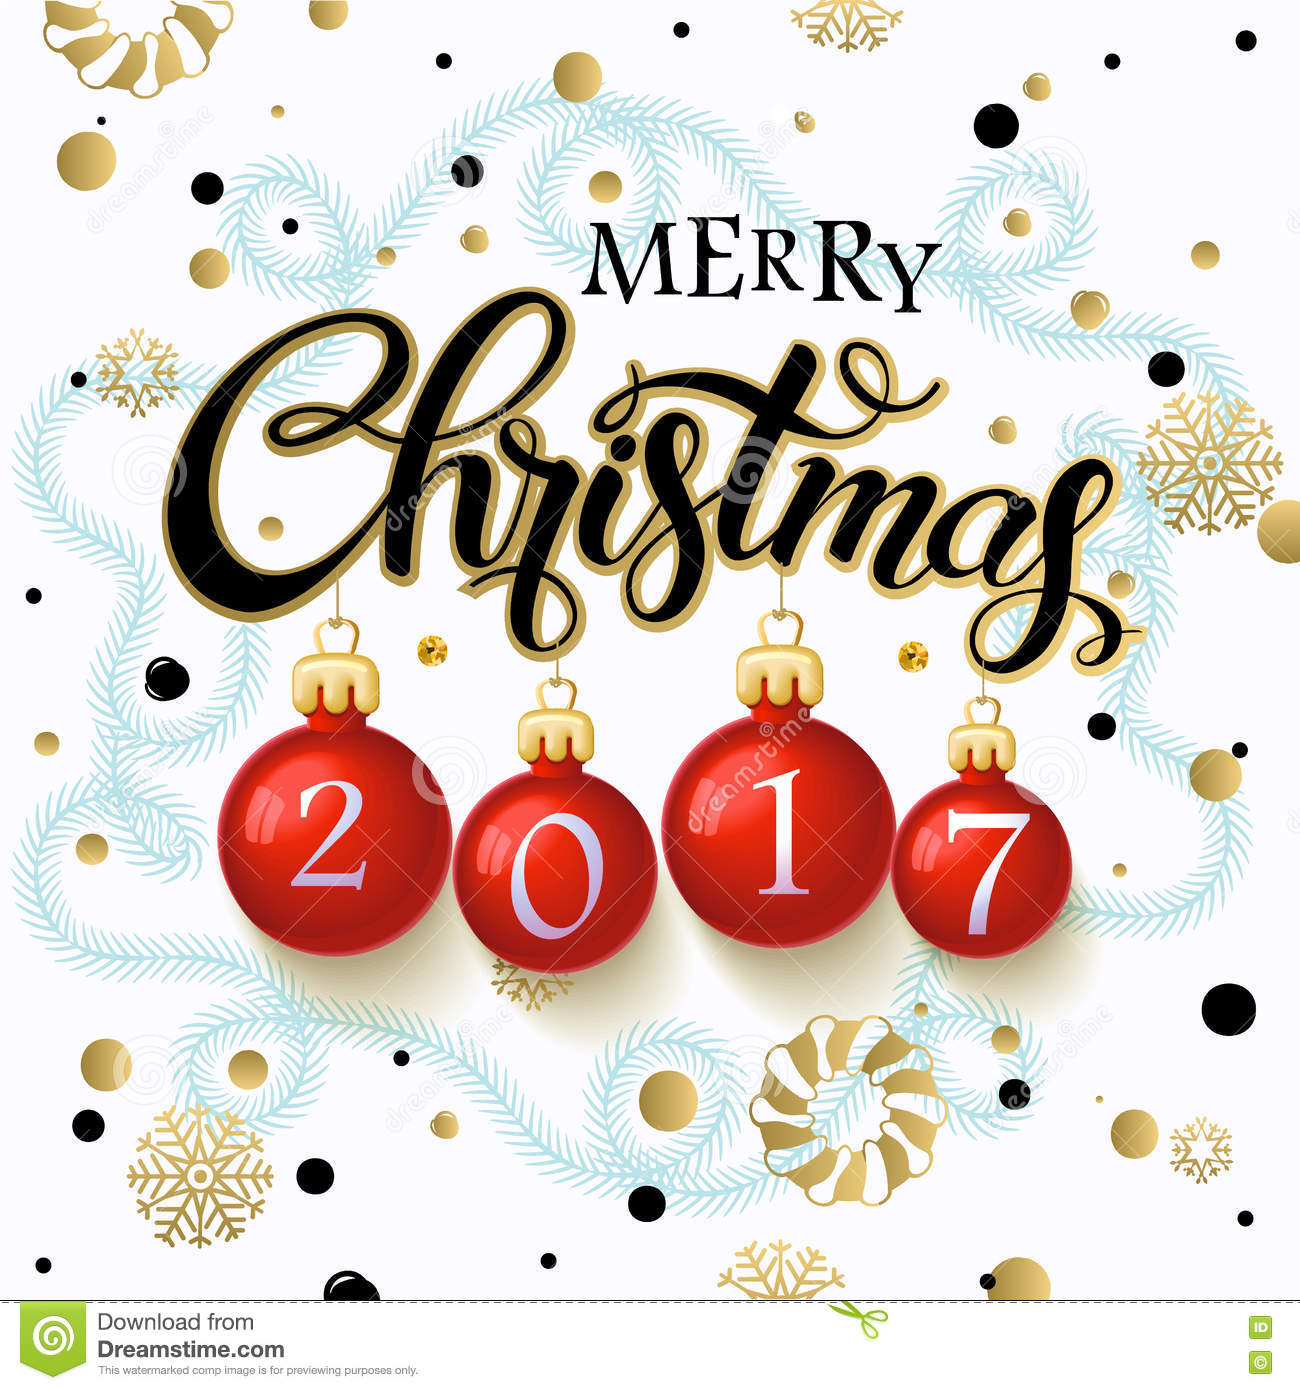 download merry christmas 2017 poster stock vector illustration of light calligraphy 79321331